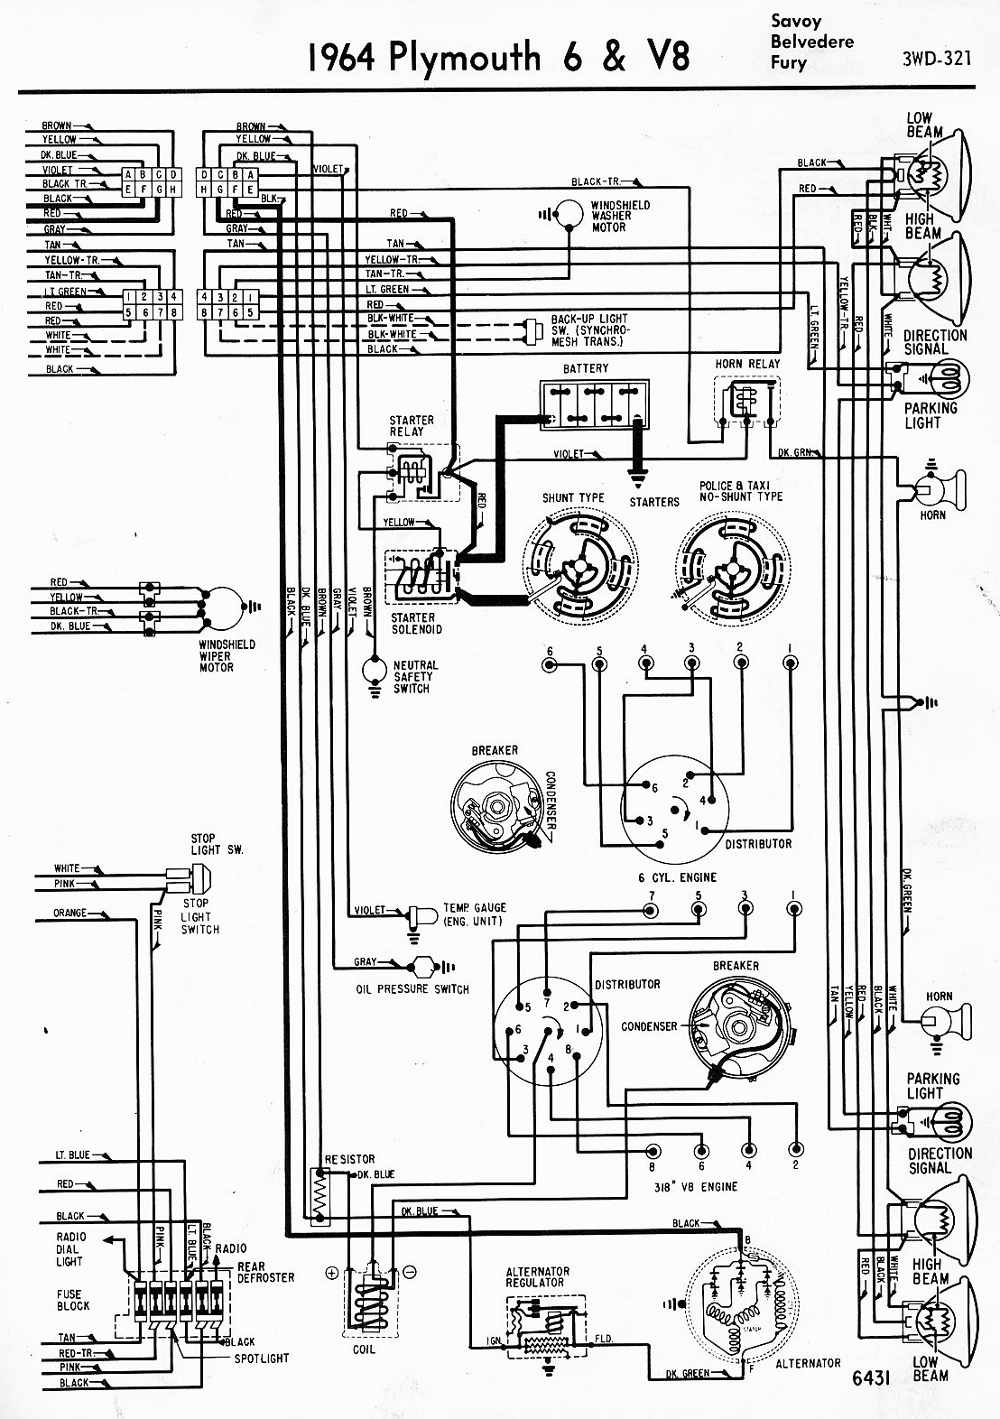 machine wiring together with 1967 plymouth belvedere wiring diagram 1967 ford fairlane wiring diagram plymouth car manuals wiring diagrams pdf fault codes rh automotive manuals net